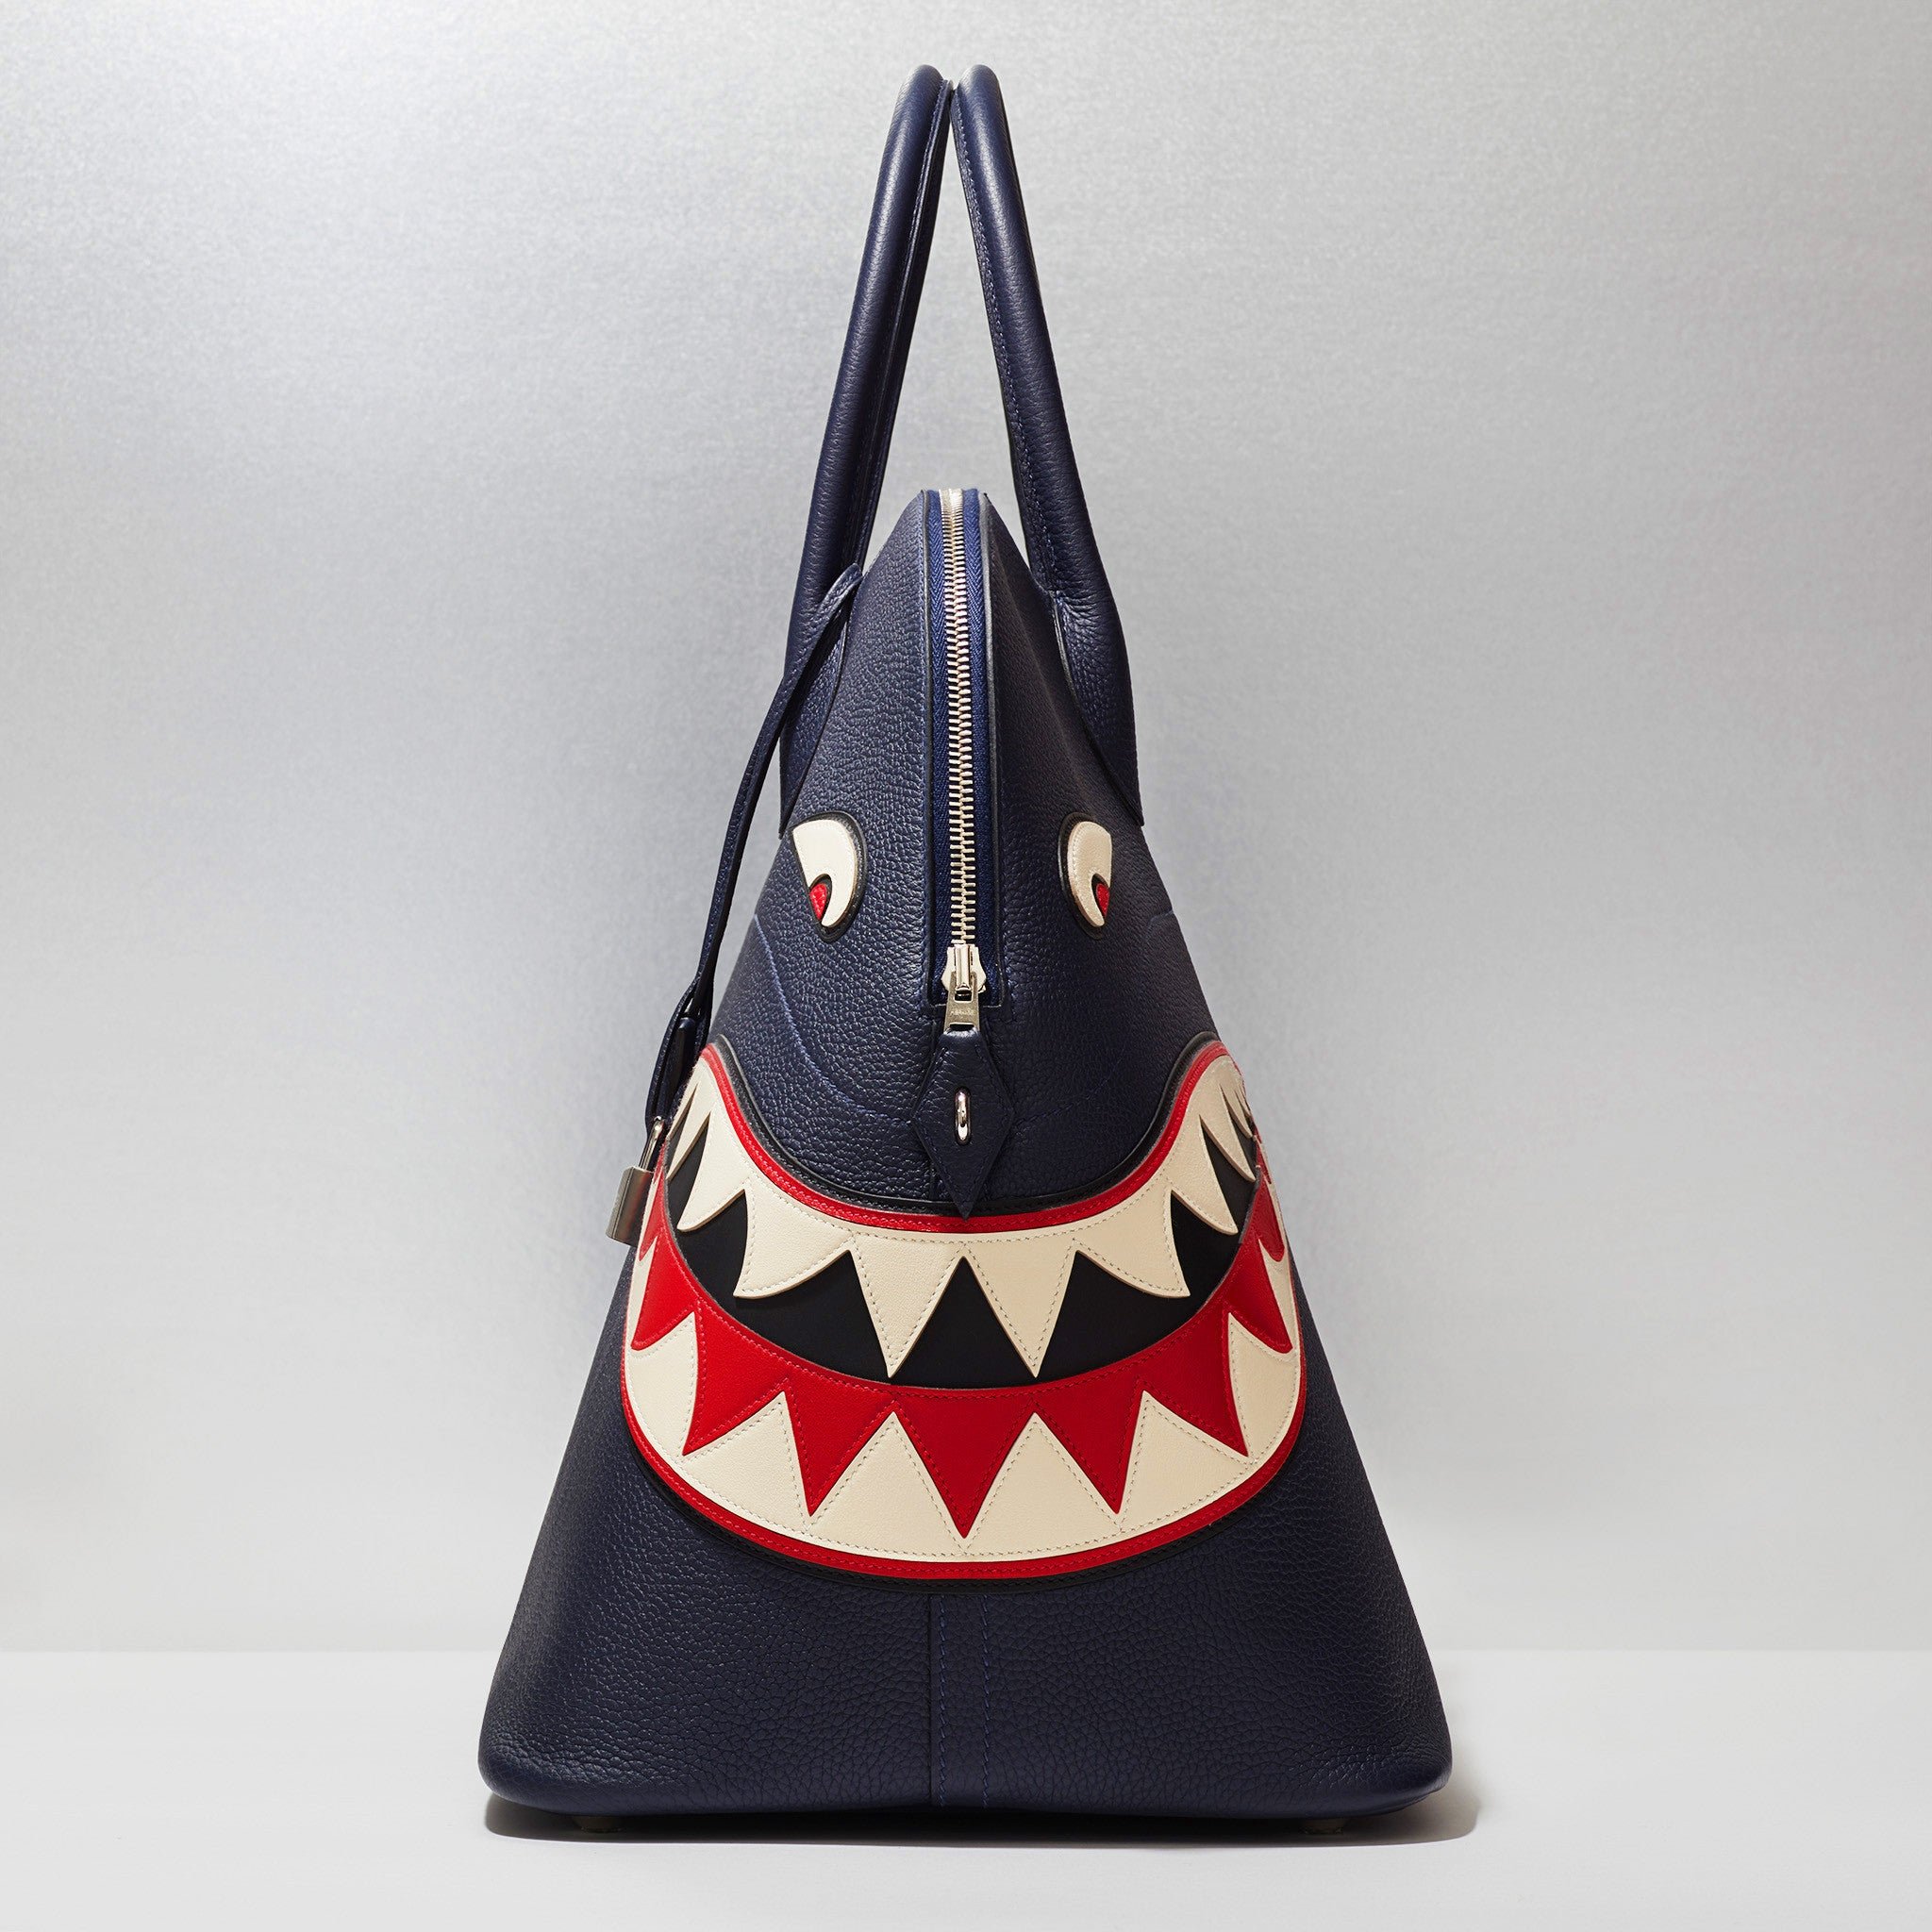 Runway Shark Bolide Bag by Hermès - Hermes